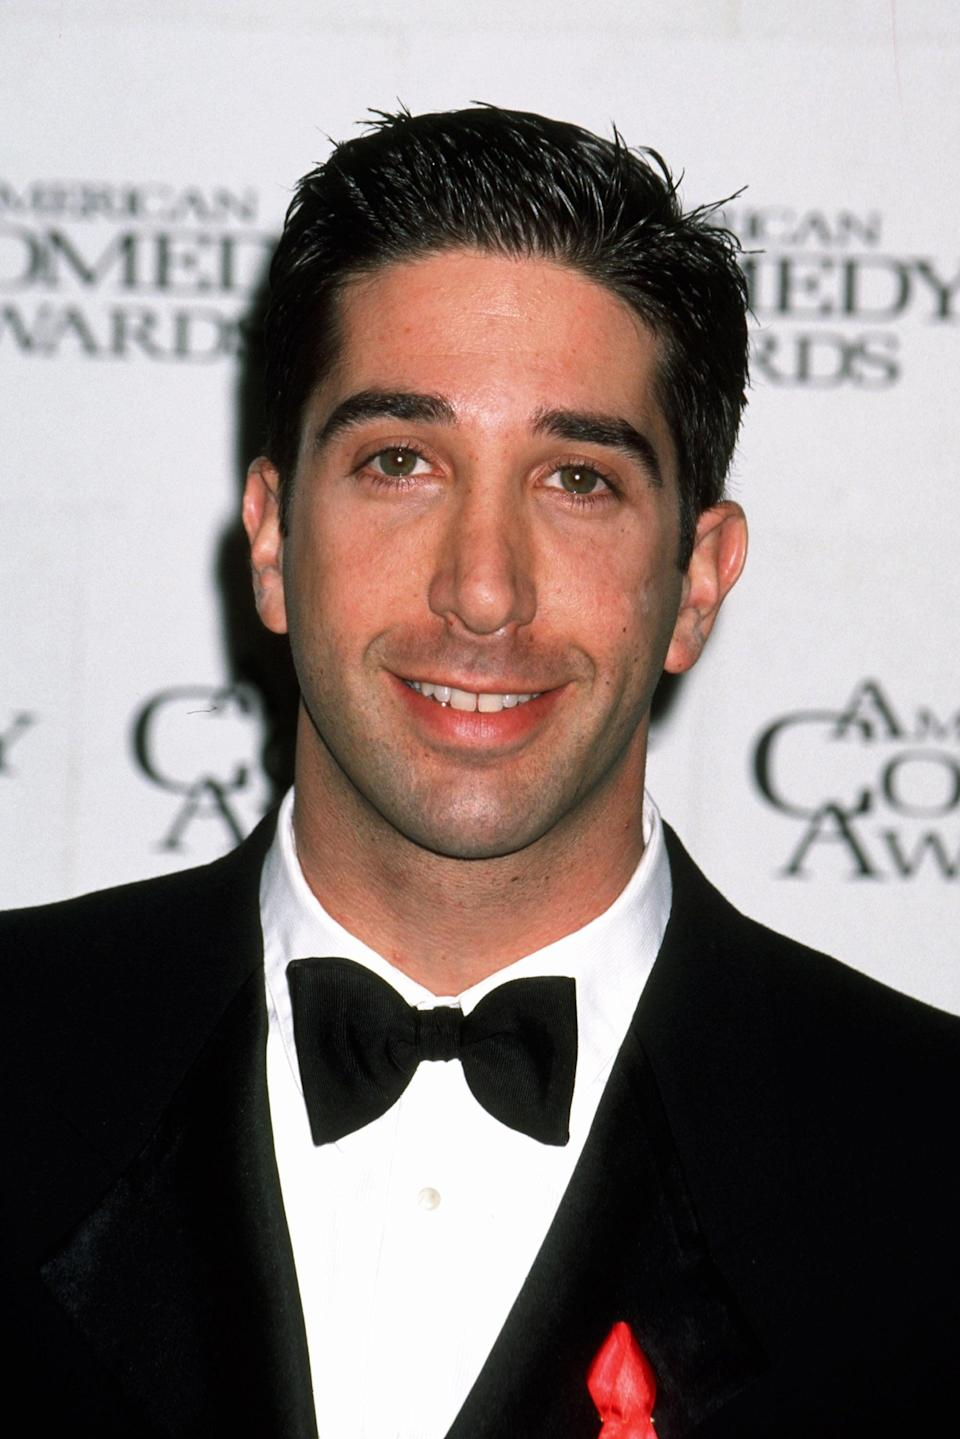 """<p>David Schwimmer was 28 years old when the first episode of <strong>Friends</strong> aired, making him only a few months older than his character, Ross Geller, who was on the cusp of 27. Schwimmer starred in the rom-com, <strong>The Pallbearer</strong>, alongside <a class=""""link rapid-noclick-resp"""" href=""""https://www.popsugar.co.uk/Gwyneth-Paltrow"""" rel=""""nofollow noopener"""" target=""""_blank"""" data-ylk=""""slk:Gwyneth Paltrow"""">Gwyneth Paltrow</a> and in <strong>Six Days Seven Nights</strong> in 1998. He was nominated for a Primetime Emmy for Outstanding Supporting Actor in a Comedy Series in 1995 for his role of Ross.</p>"""